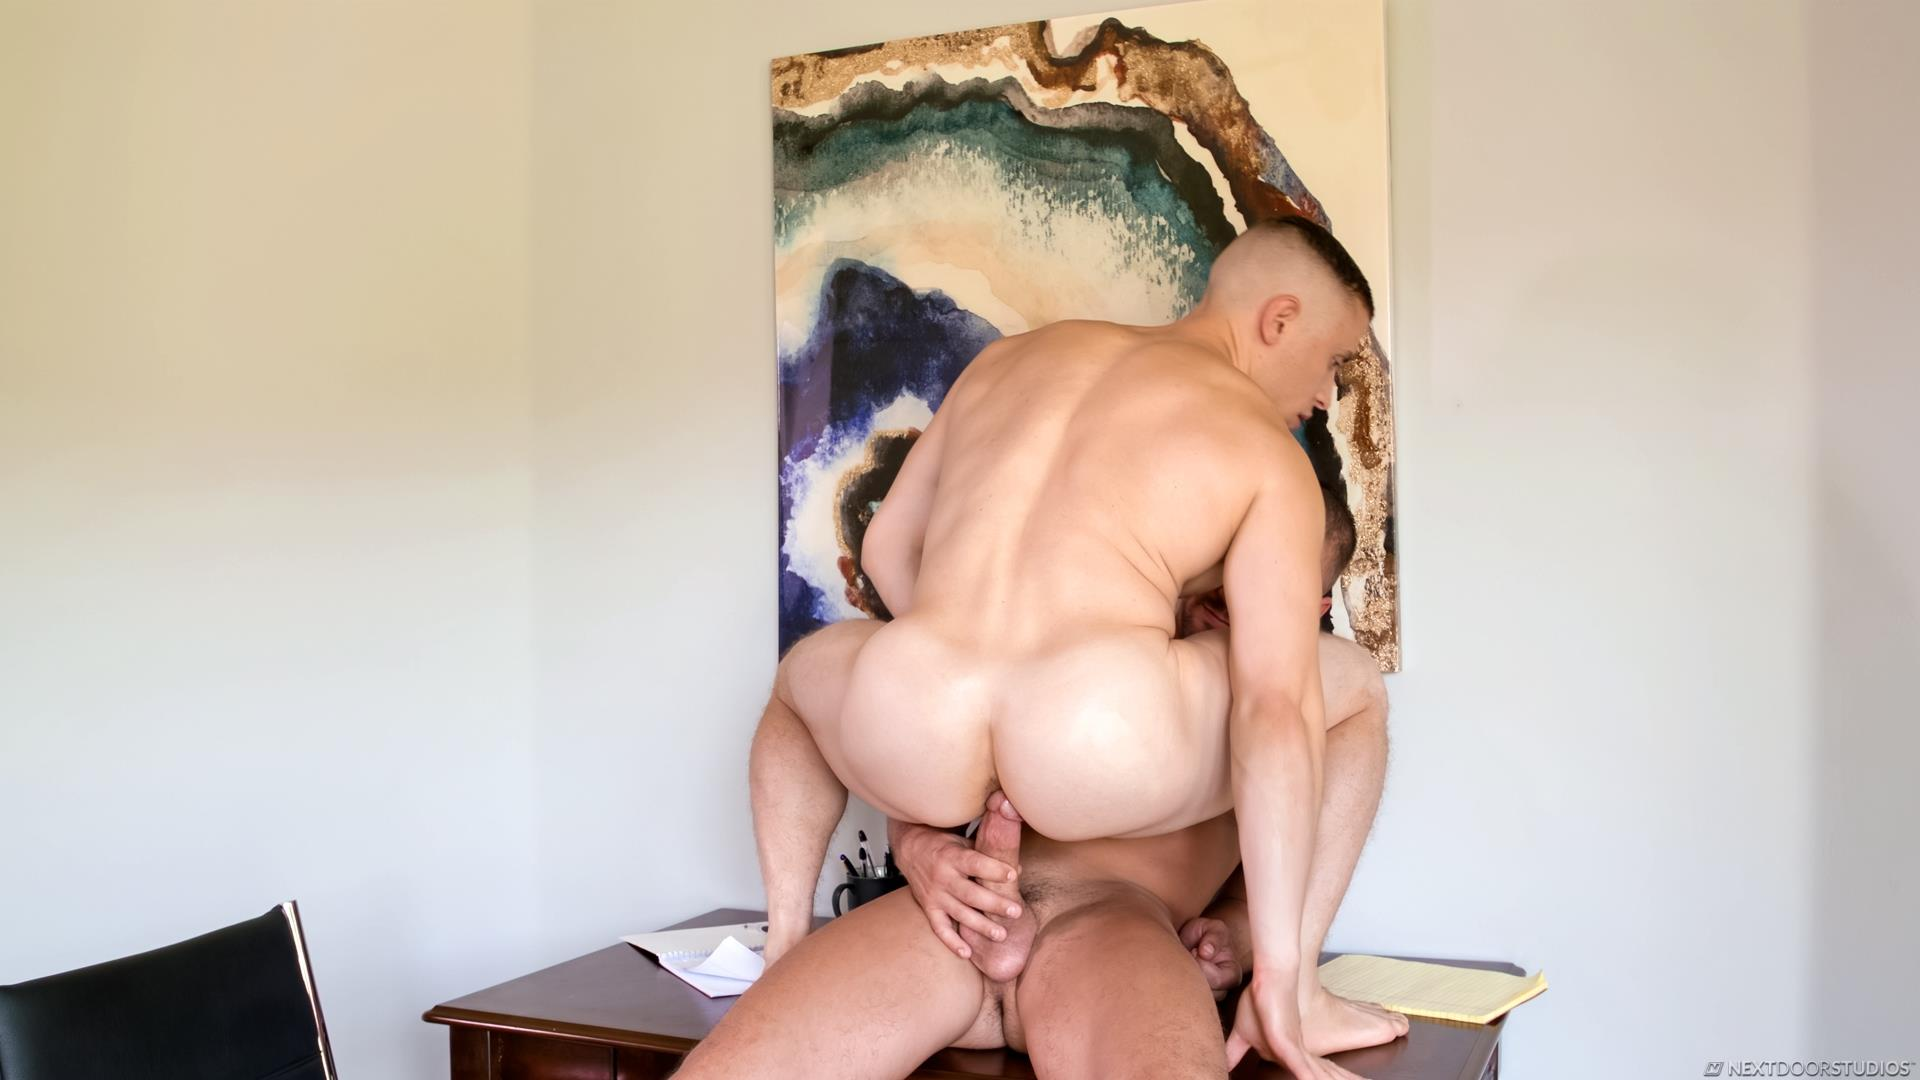 Next-Door-Studios-Dante-Martin-and-Darin-Silvers-Big-Dick-Muscle-Guys-Bareback-Sex-Video-04 Giving My Muscular Roommate A Bareback Creampie